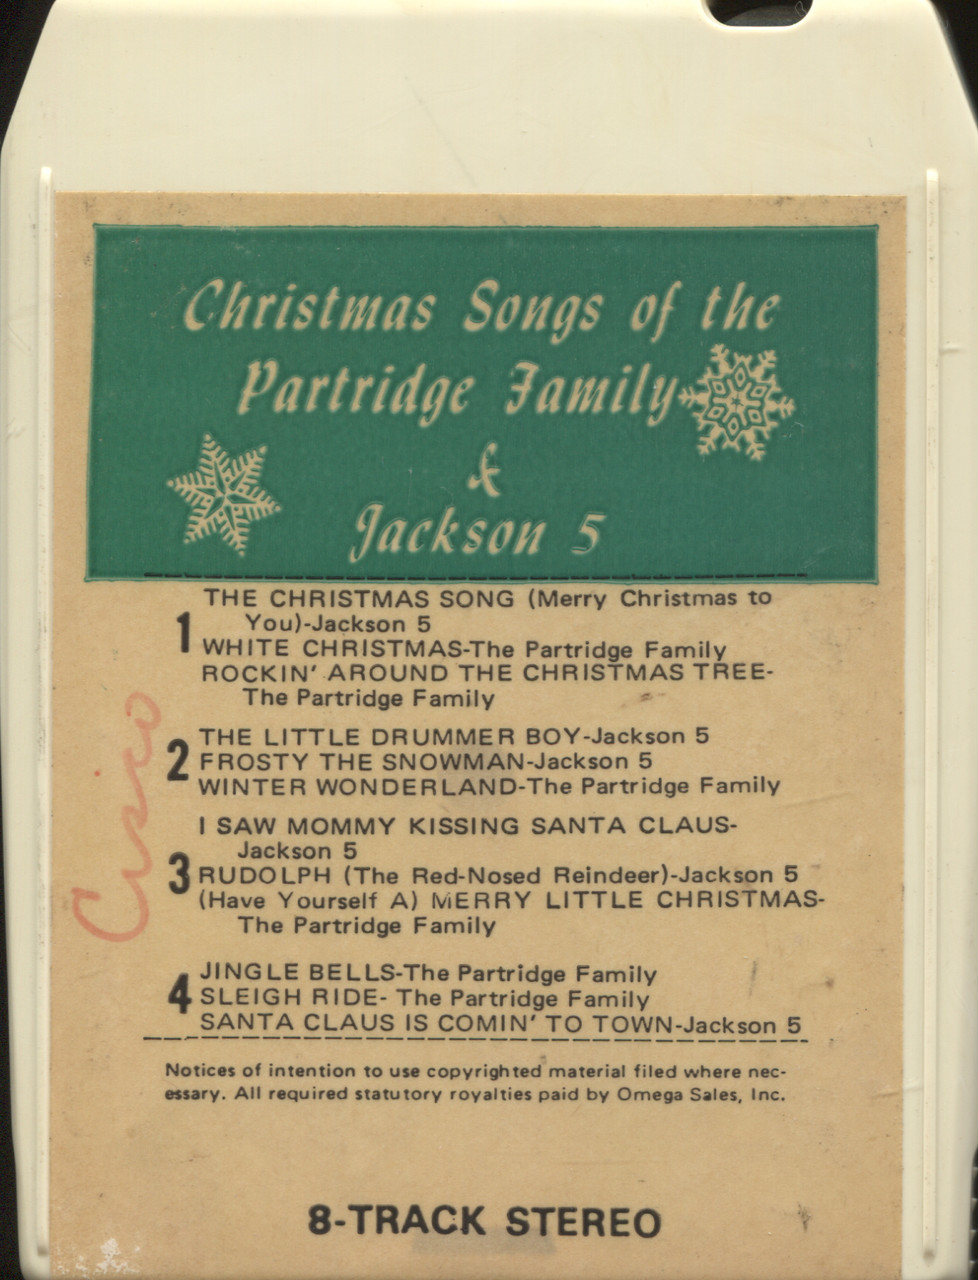 The Jackson 5 Have Yourself A Merry Little Christmas.Partridge Family Jackson 5 Christmas Songs Of The Partridge Family Jackson 5 8 Track Tape